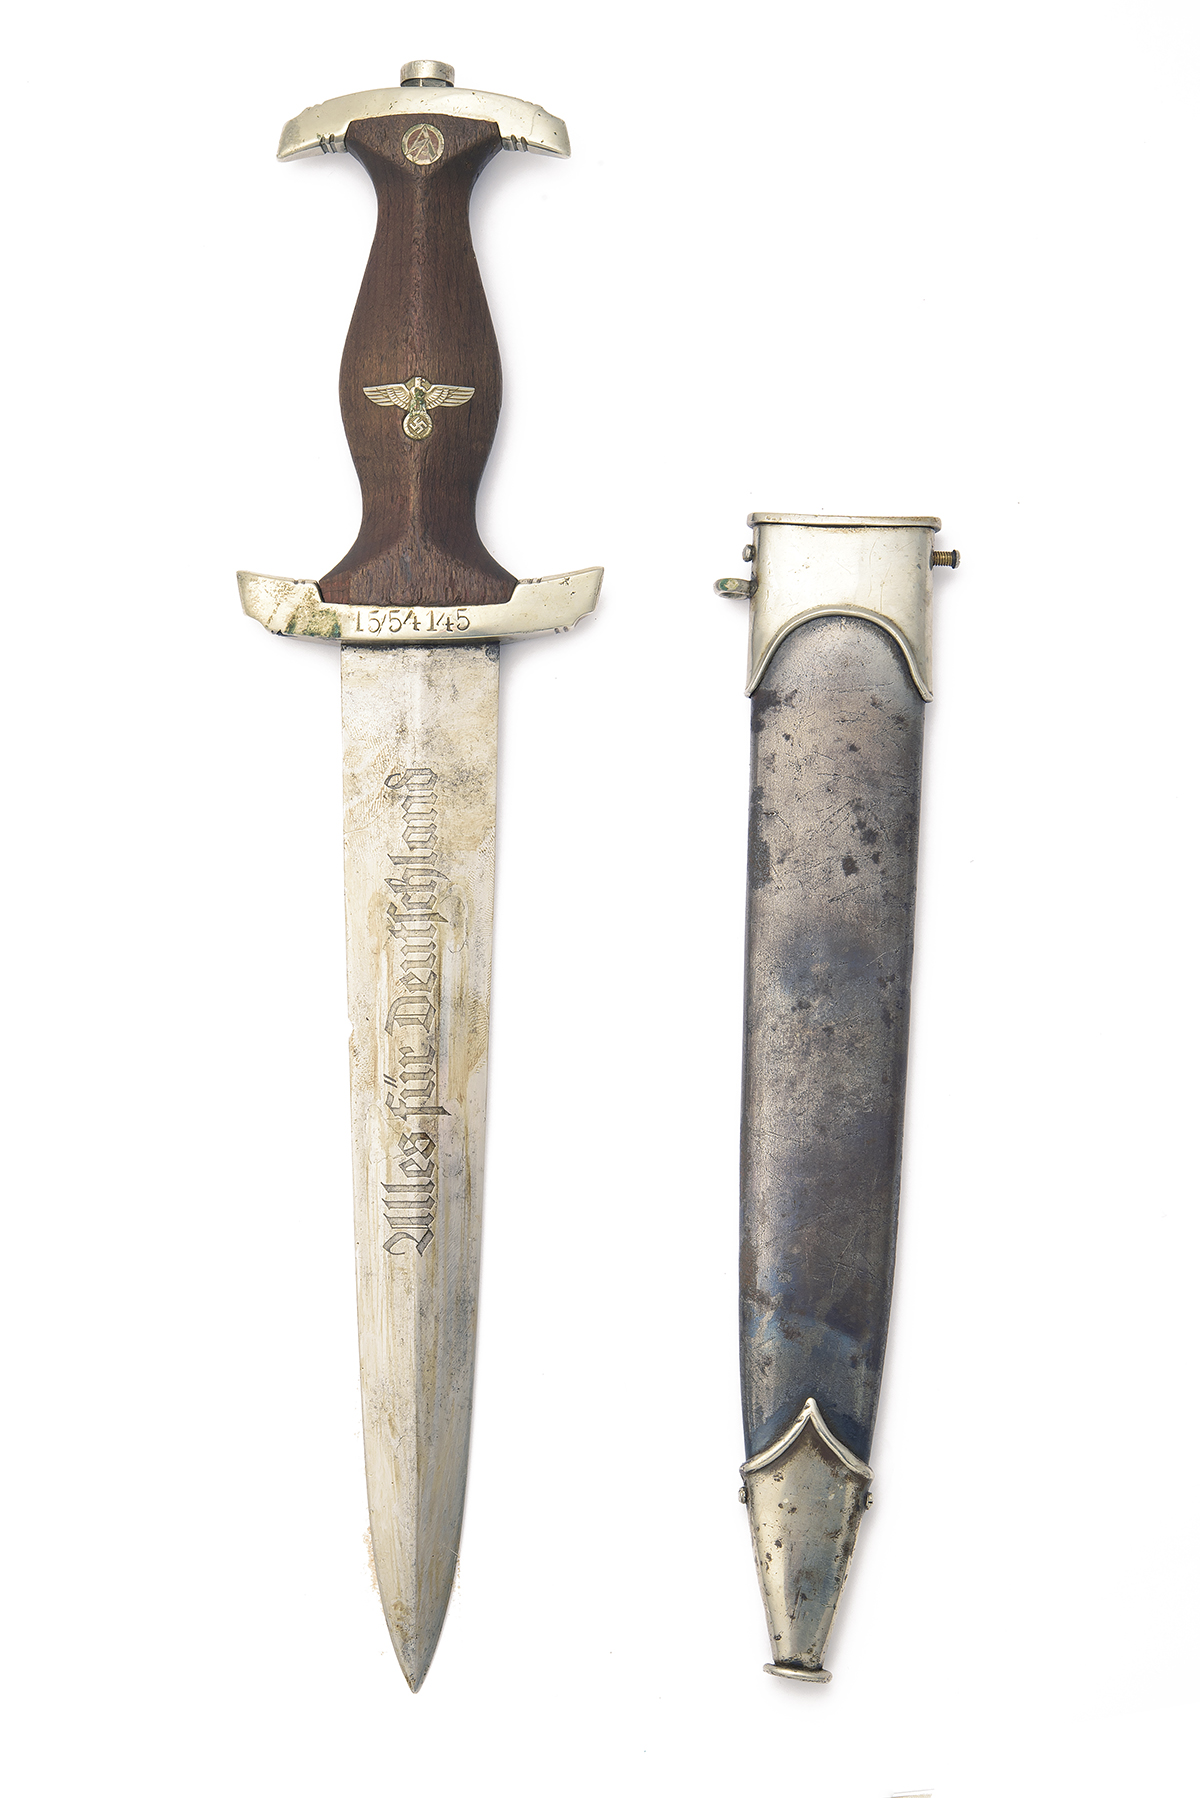 E. PACK & SOHN, SOLINGEN A PRE-WAR 'HOLBEIN' DRESS DAGGER FOR THE S.A. ORGANISATION, early 1933/34